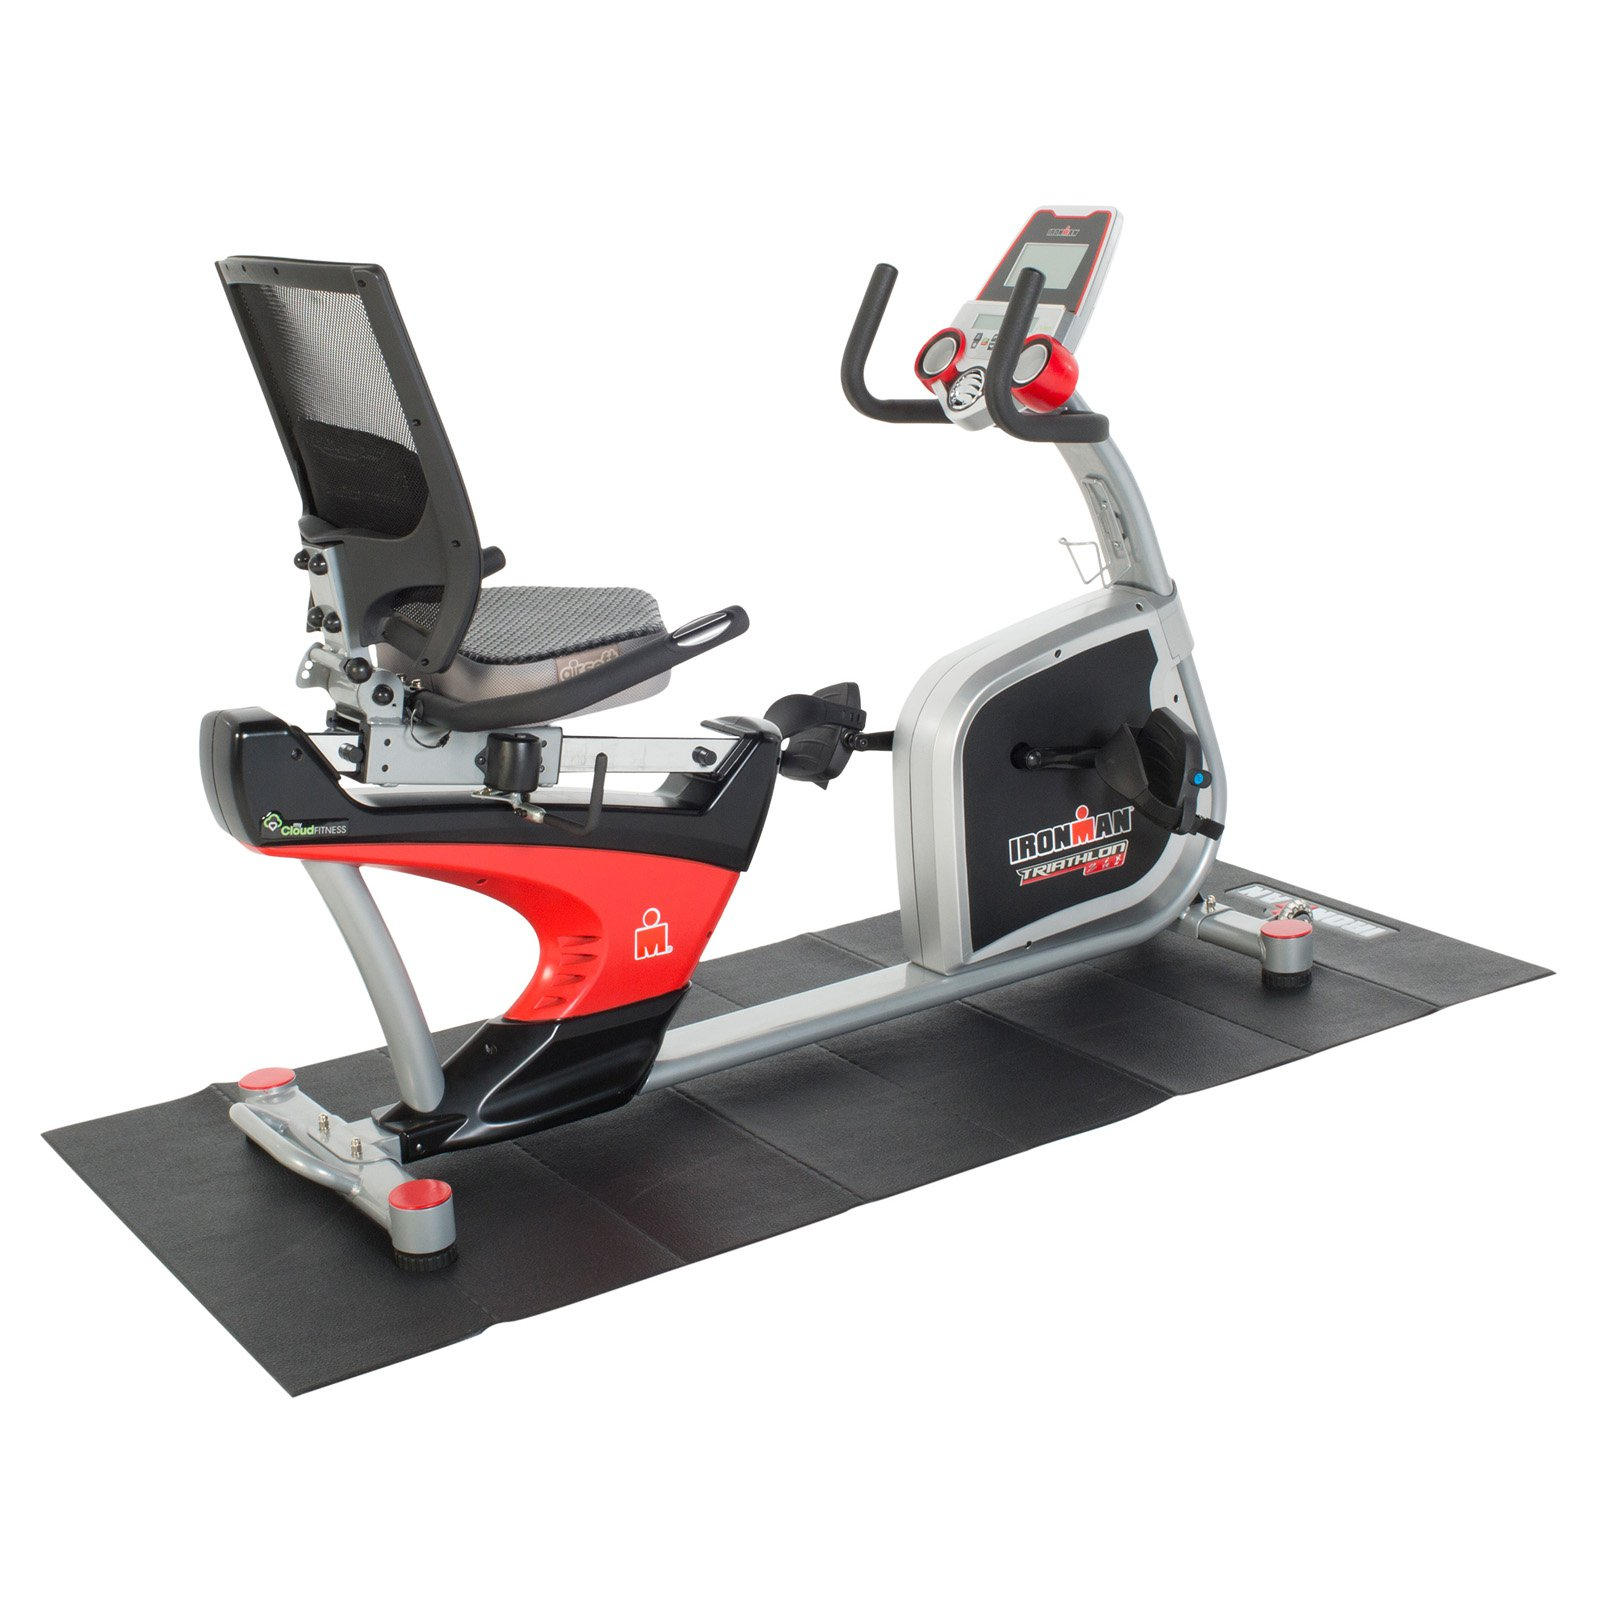 Ironman X-Class 410 Recumbent Bike with Accessories and Mat